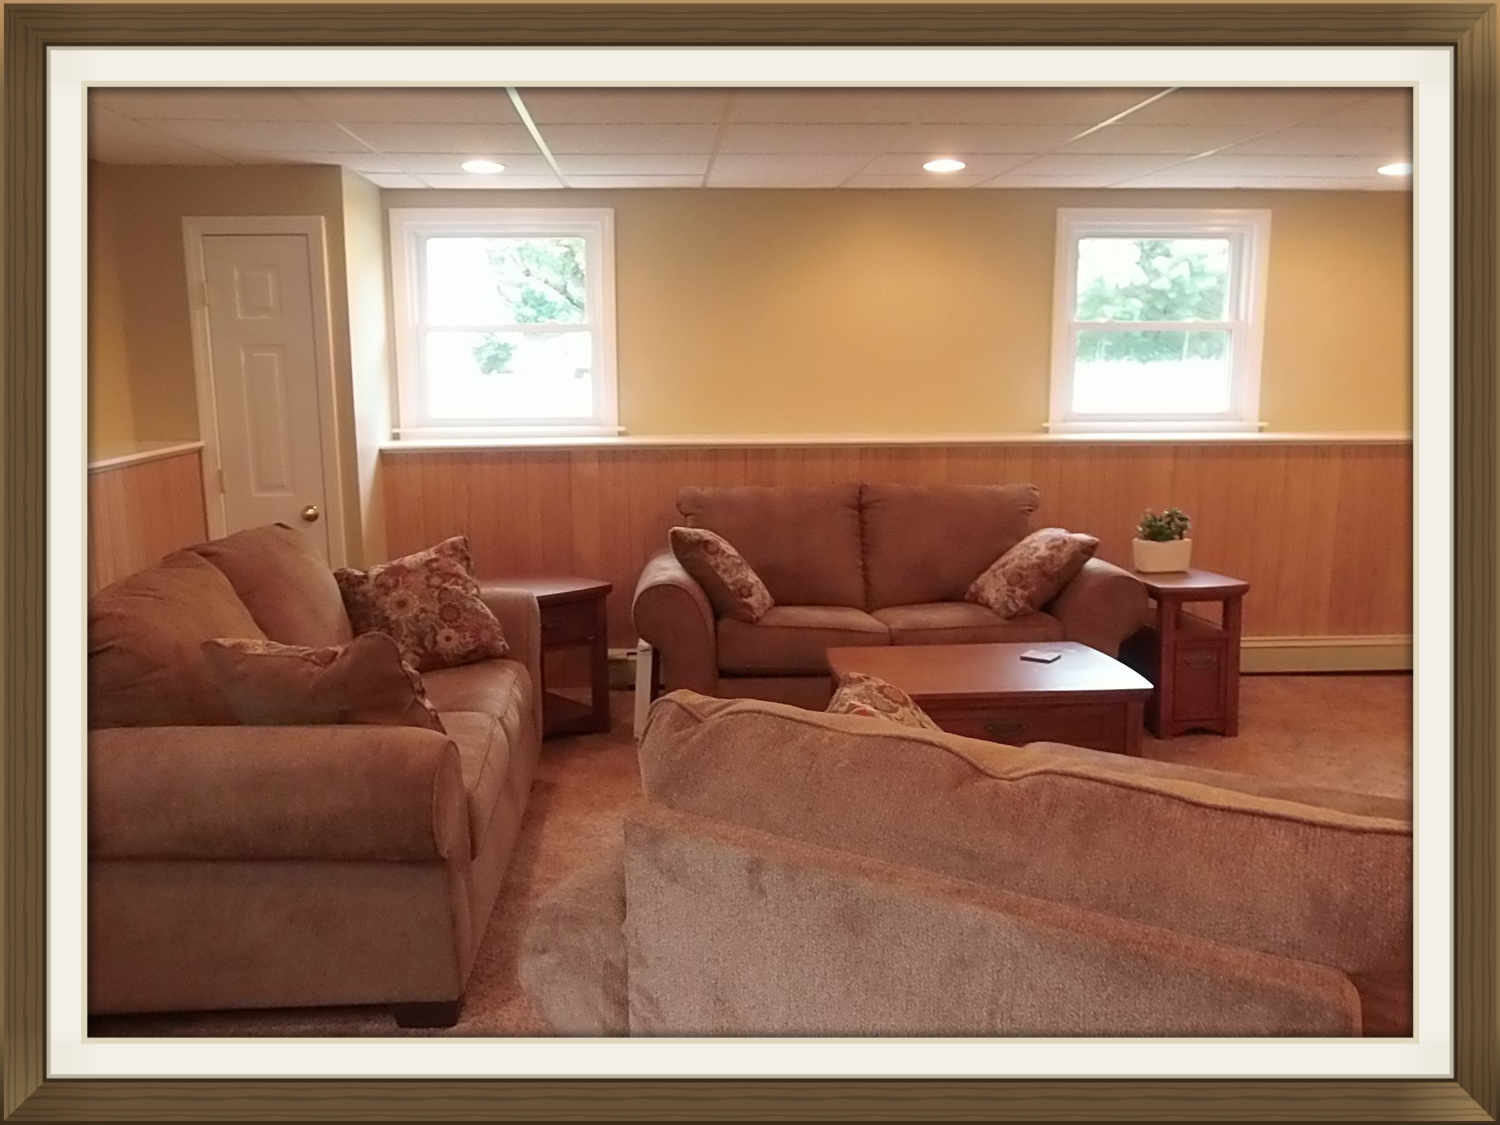 Erickson Construction Co Inc Home Addition & Remodeling